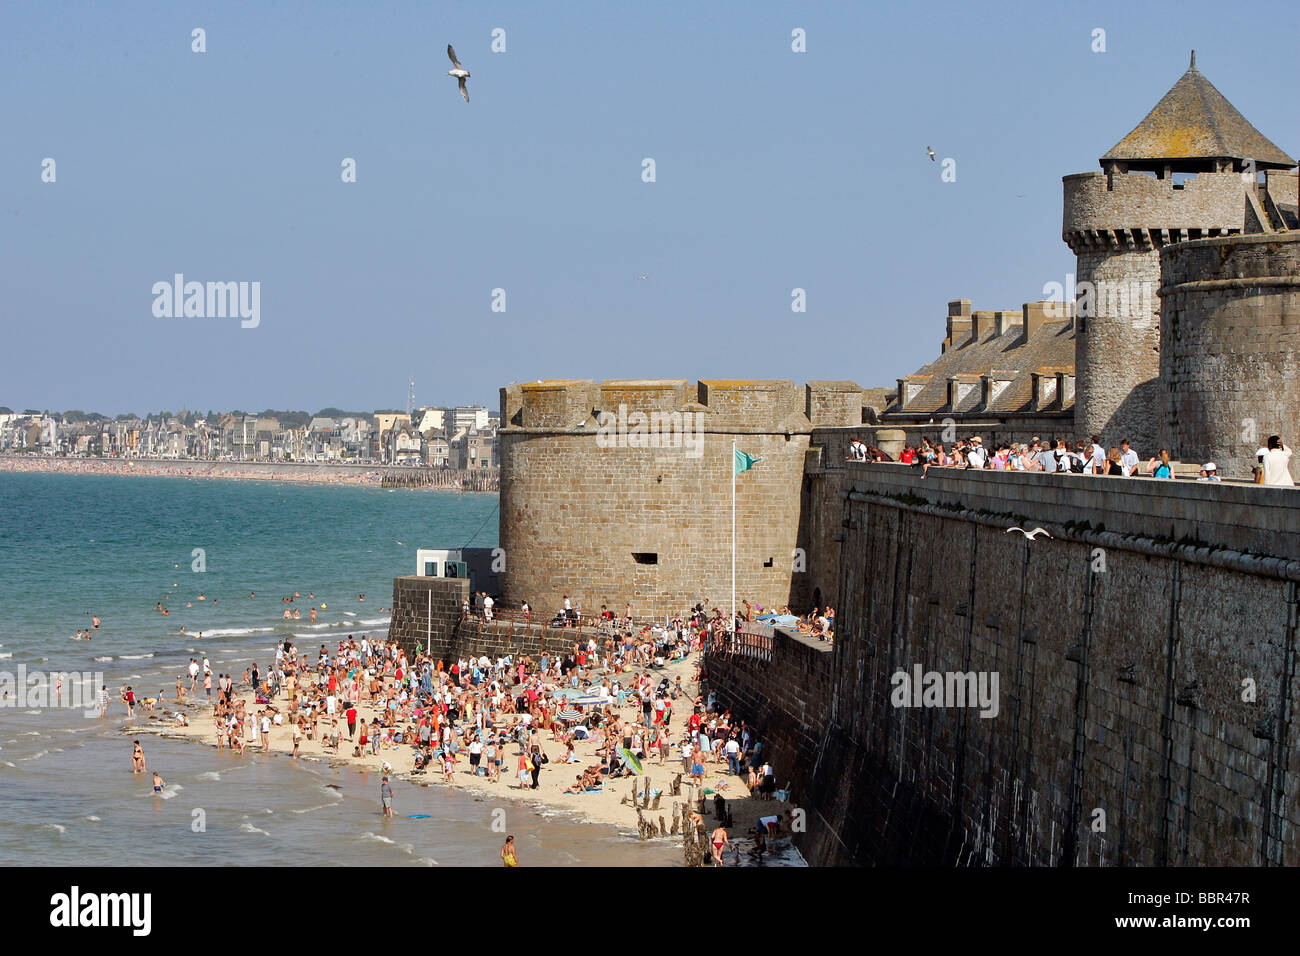 THE EVENTAIL BEACH AT THE FOOT OF THE BIDOUANE TOWER, SAINT-MALO, ILLE-ET-VILAINE (35), FRANCE Stock Photo